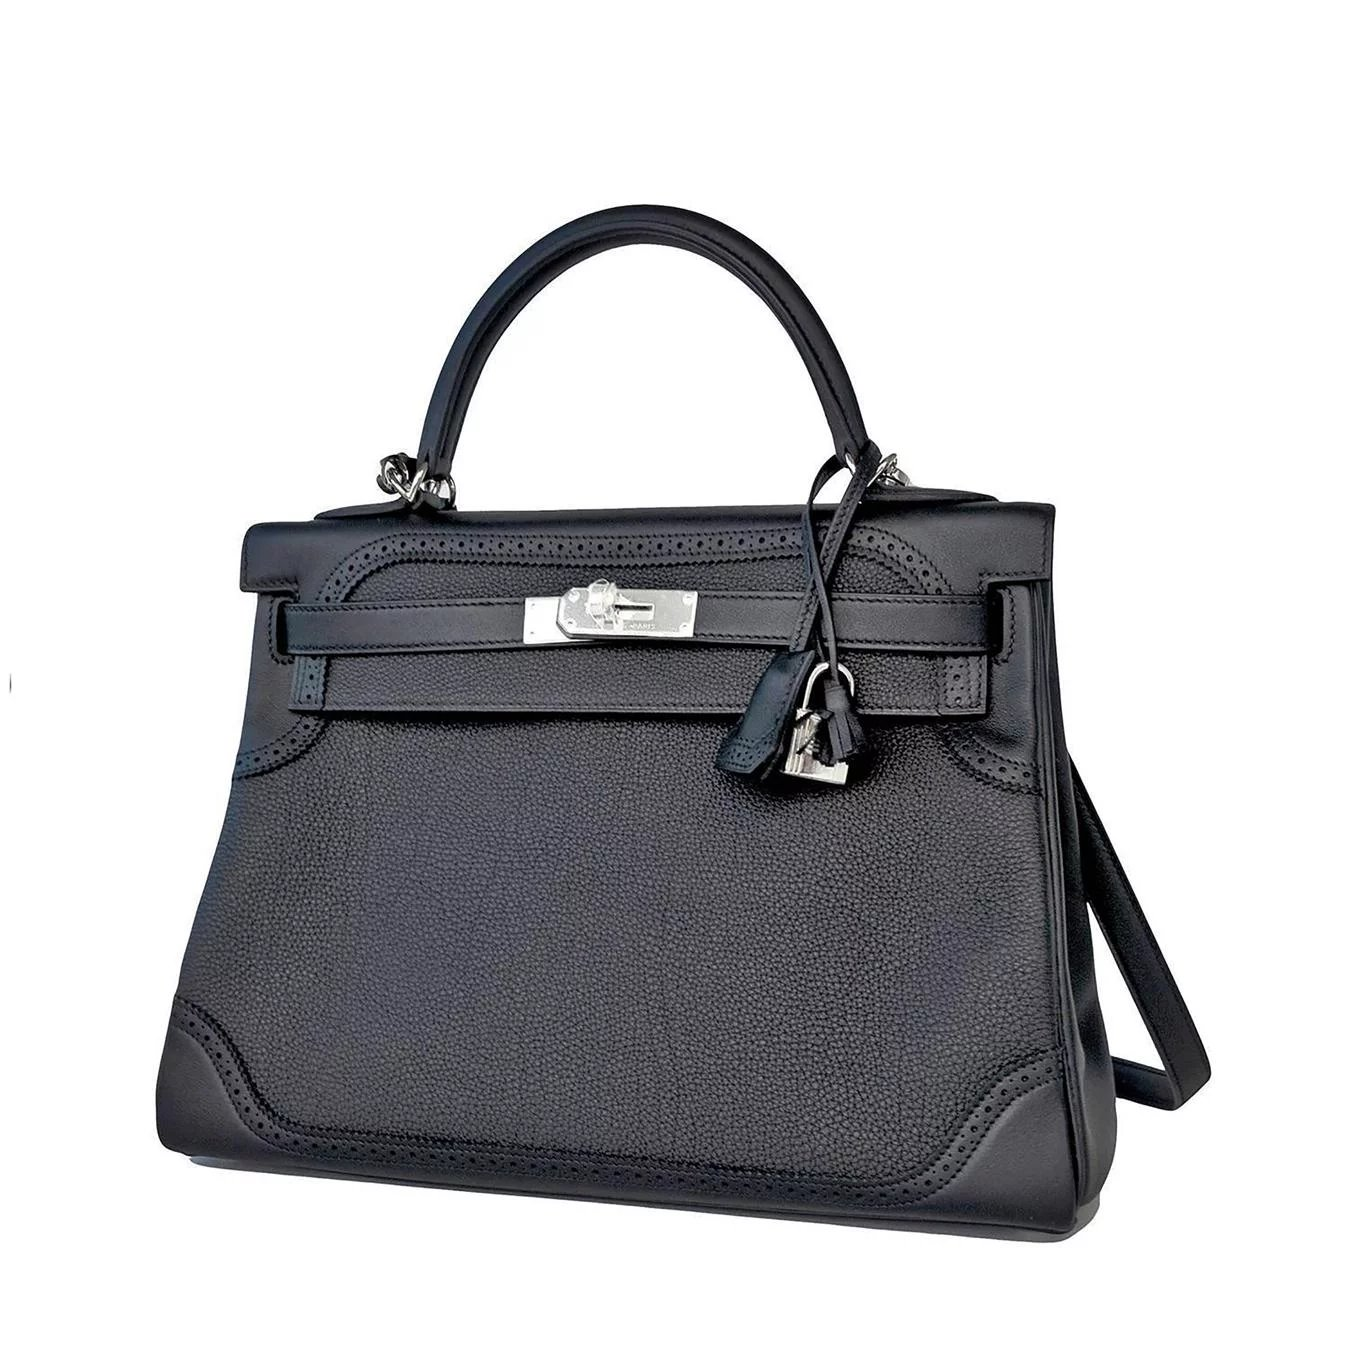 d8854a882f23 Hermes Black Ghillies Limited Edition 32cm Kelly Togo Swift Shoulder ...